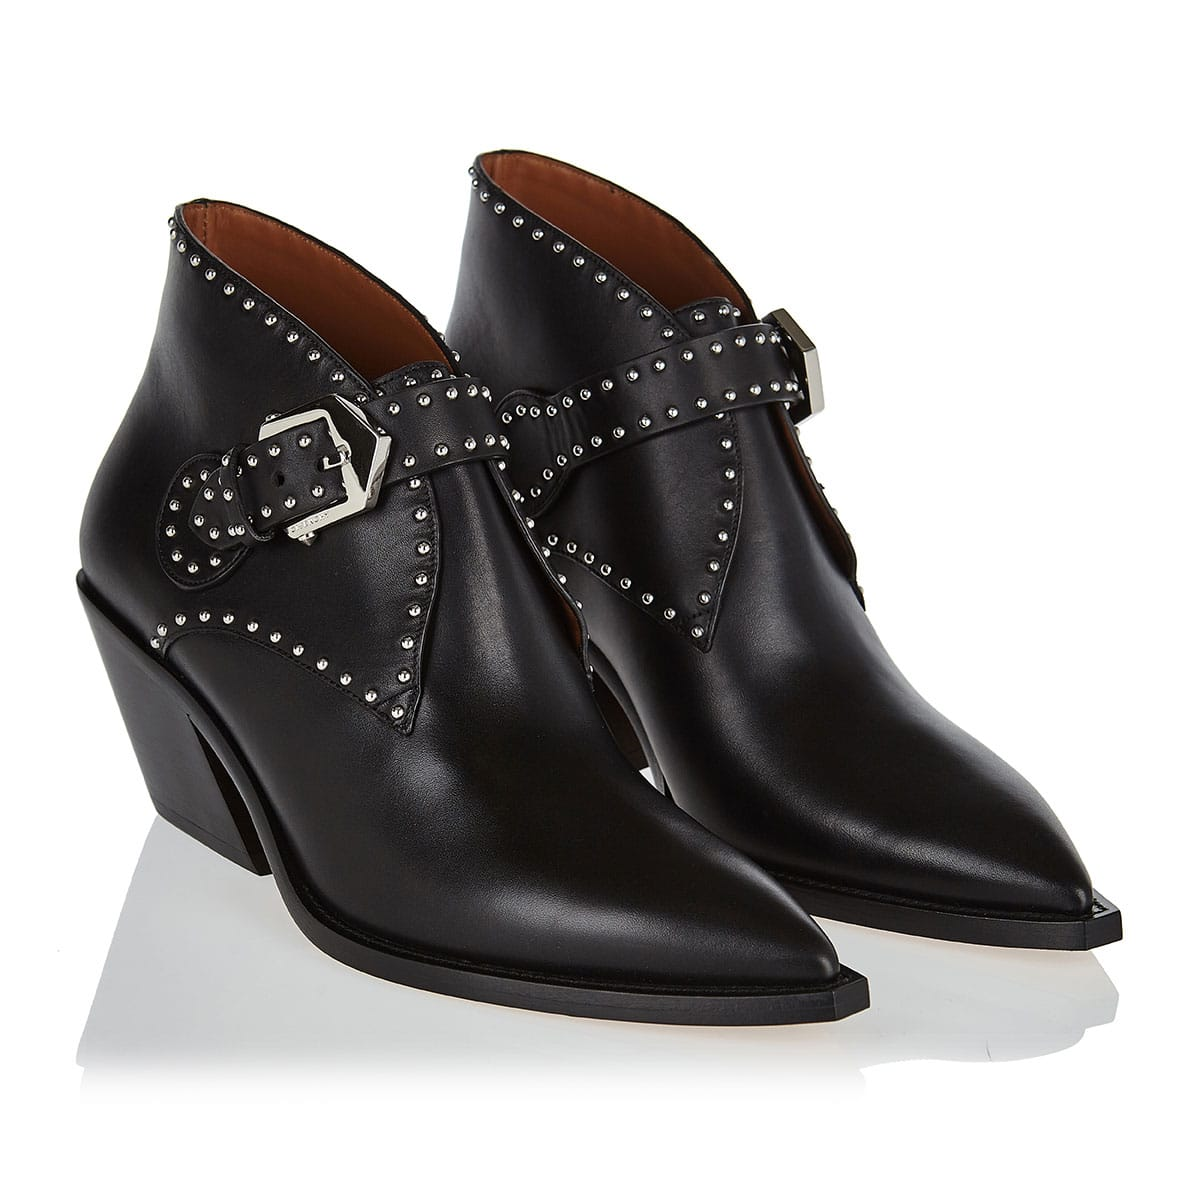 Studded cowboy booties